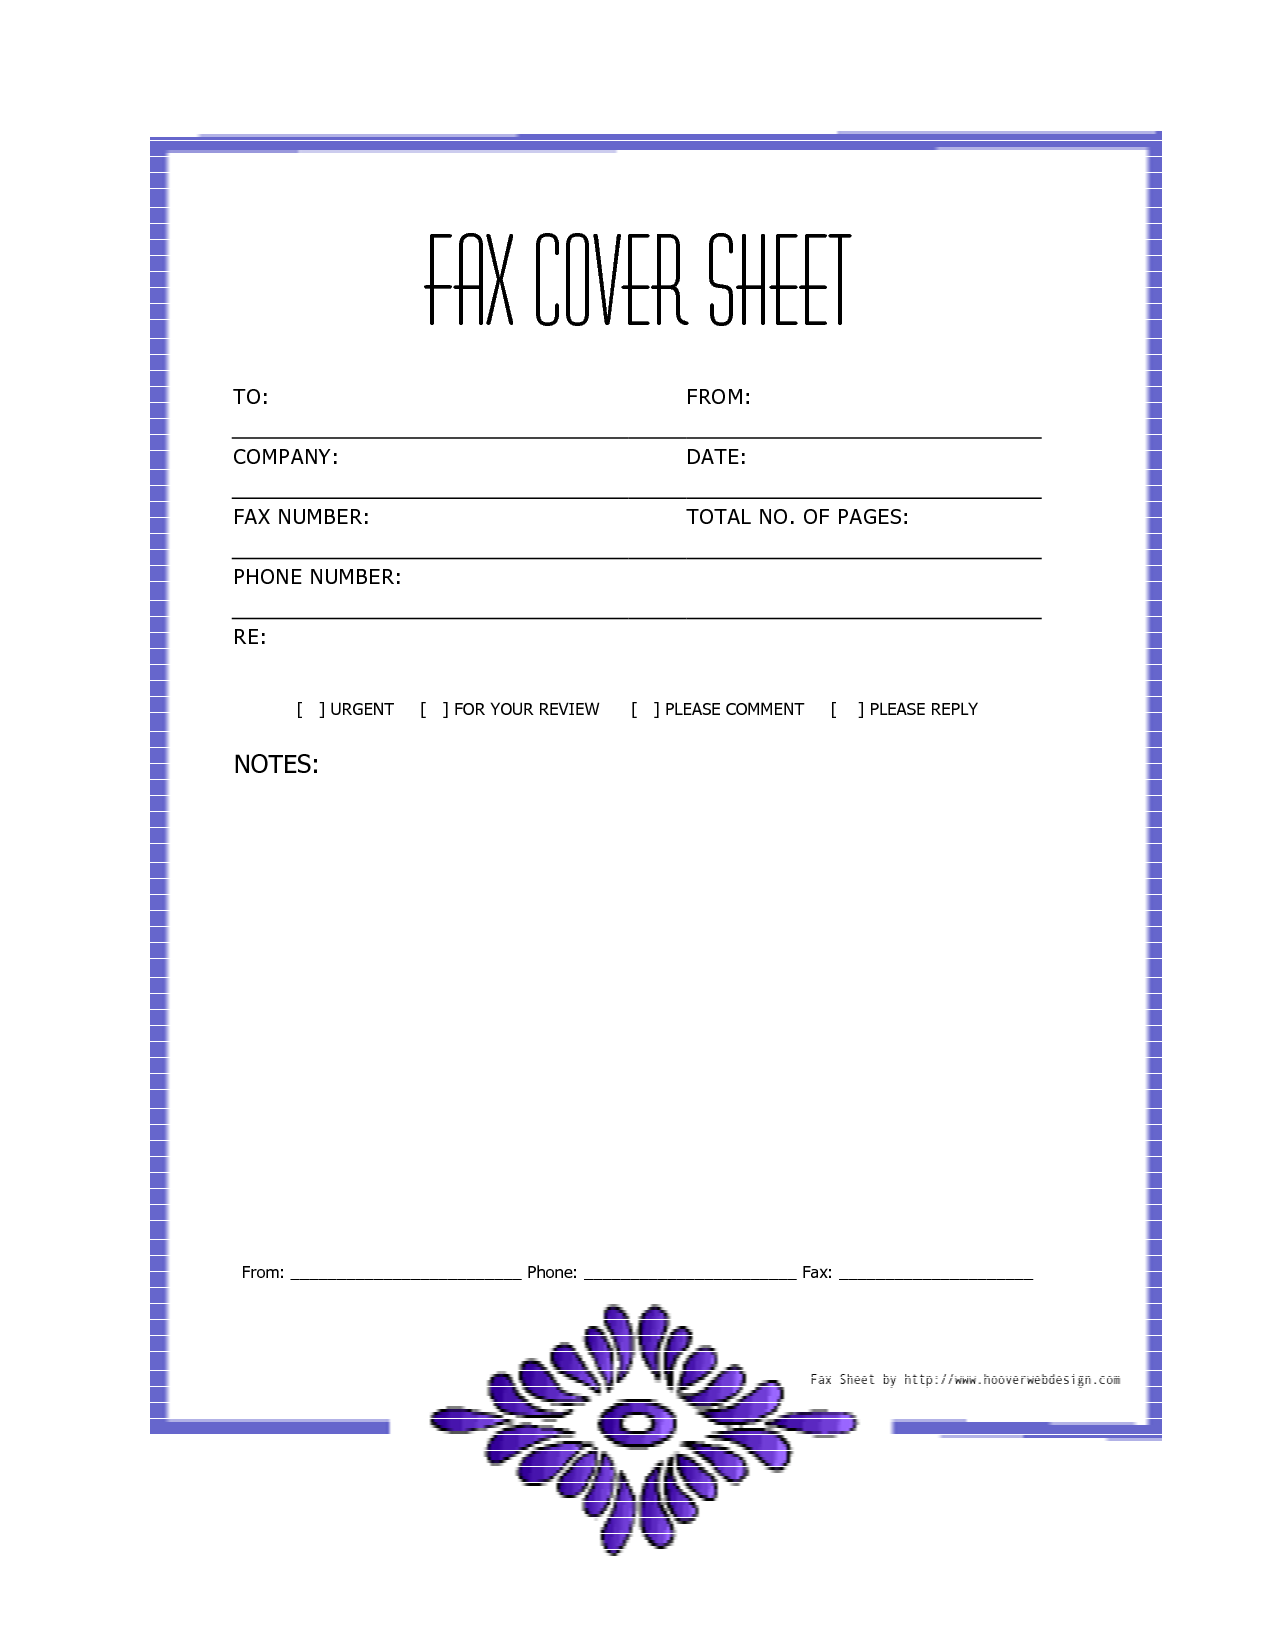 Free Downloads Fax Covers Sheets | Free Printable Fax Cover Sheet Template  Elegant   Download As  Fax Cover Sheet In Word